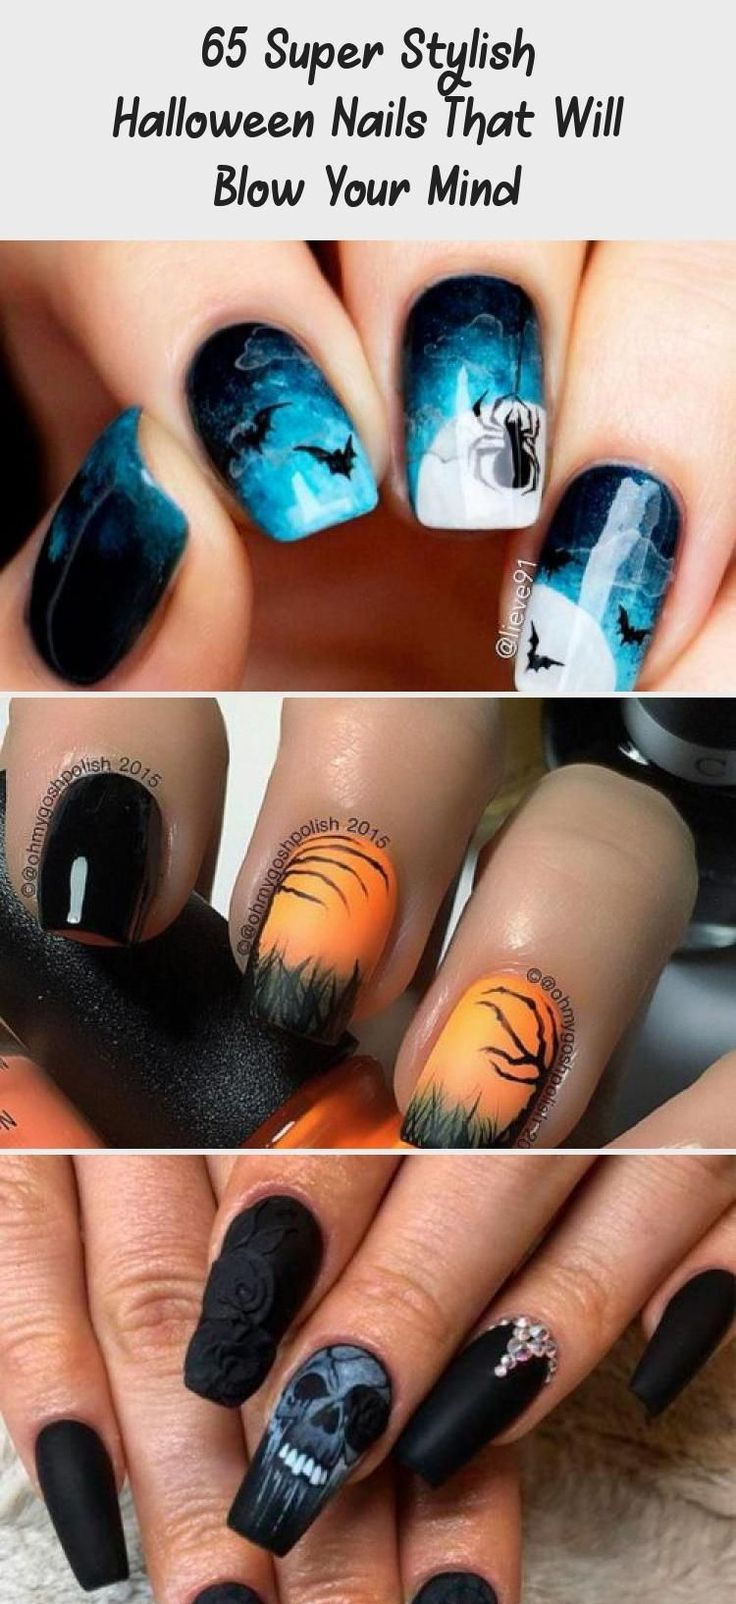 65 Tremendous Fashionable Halloween Nails That Will Blow ...